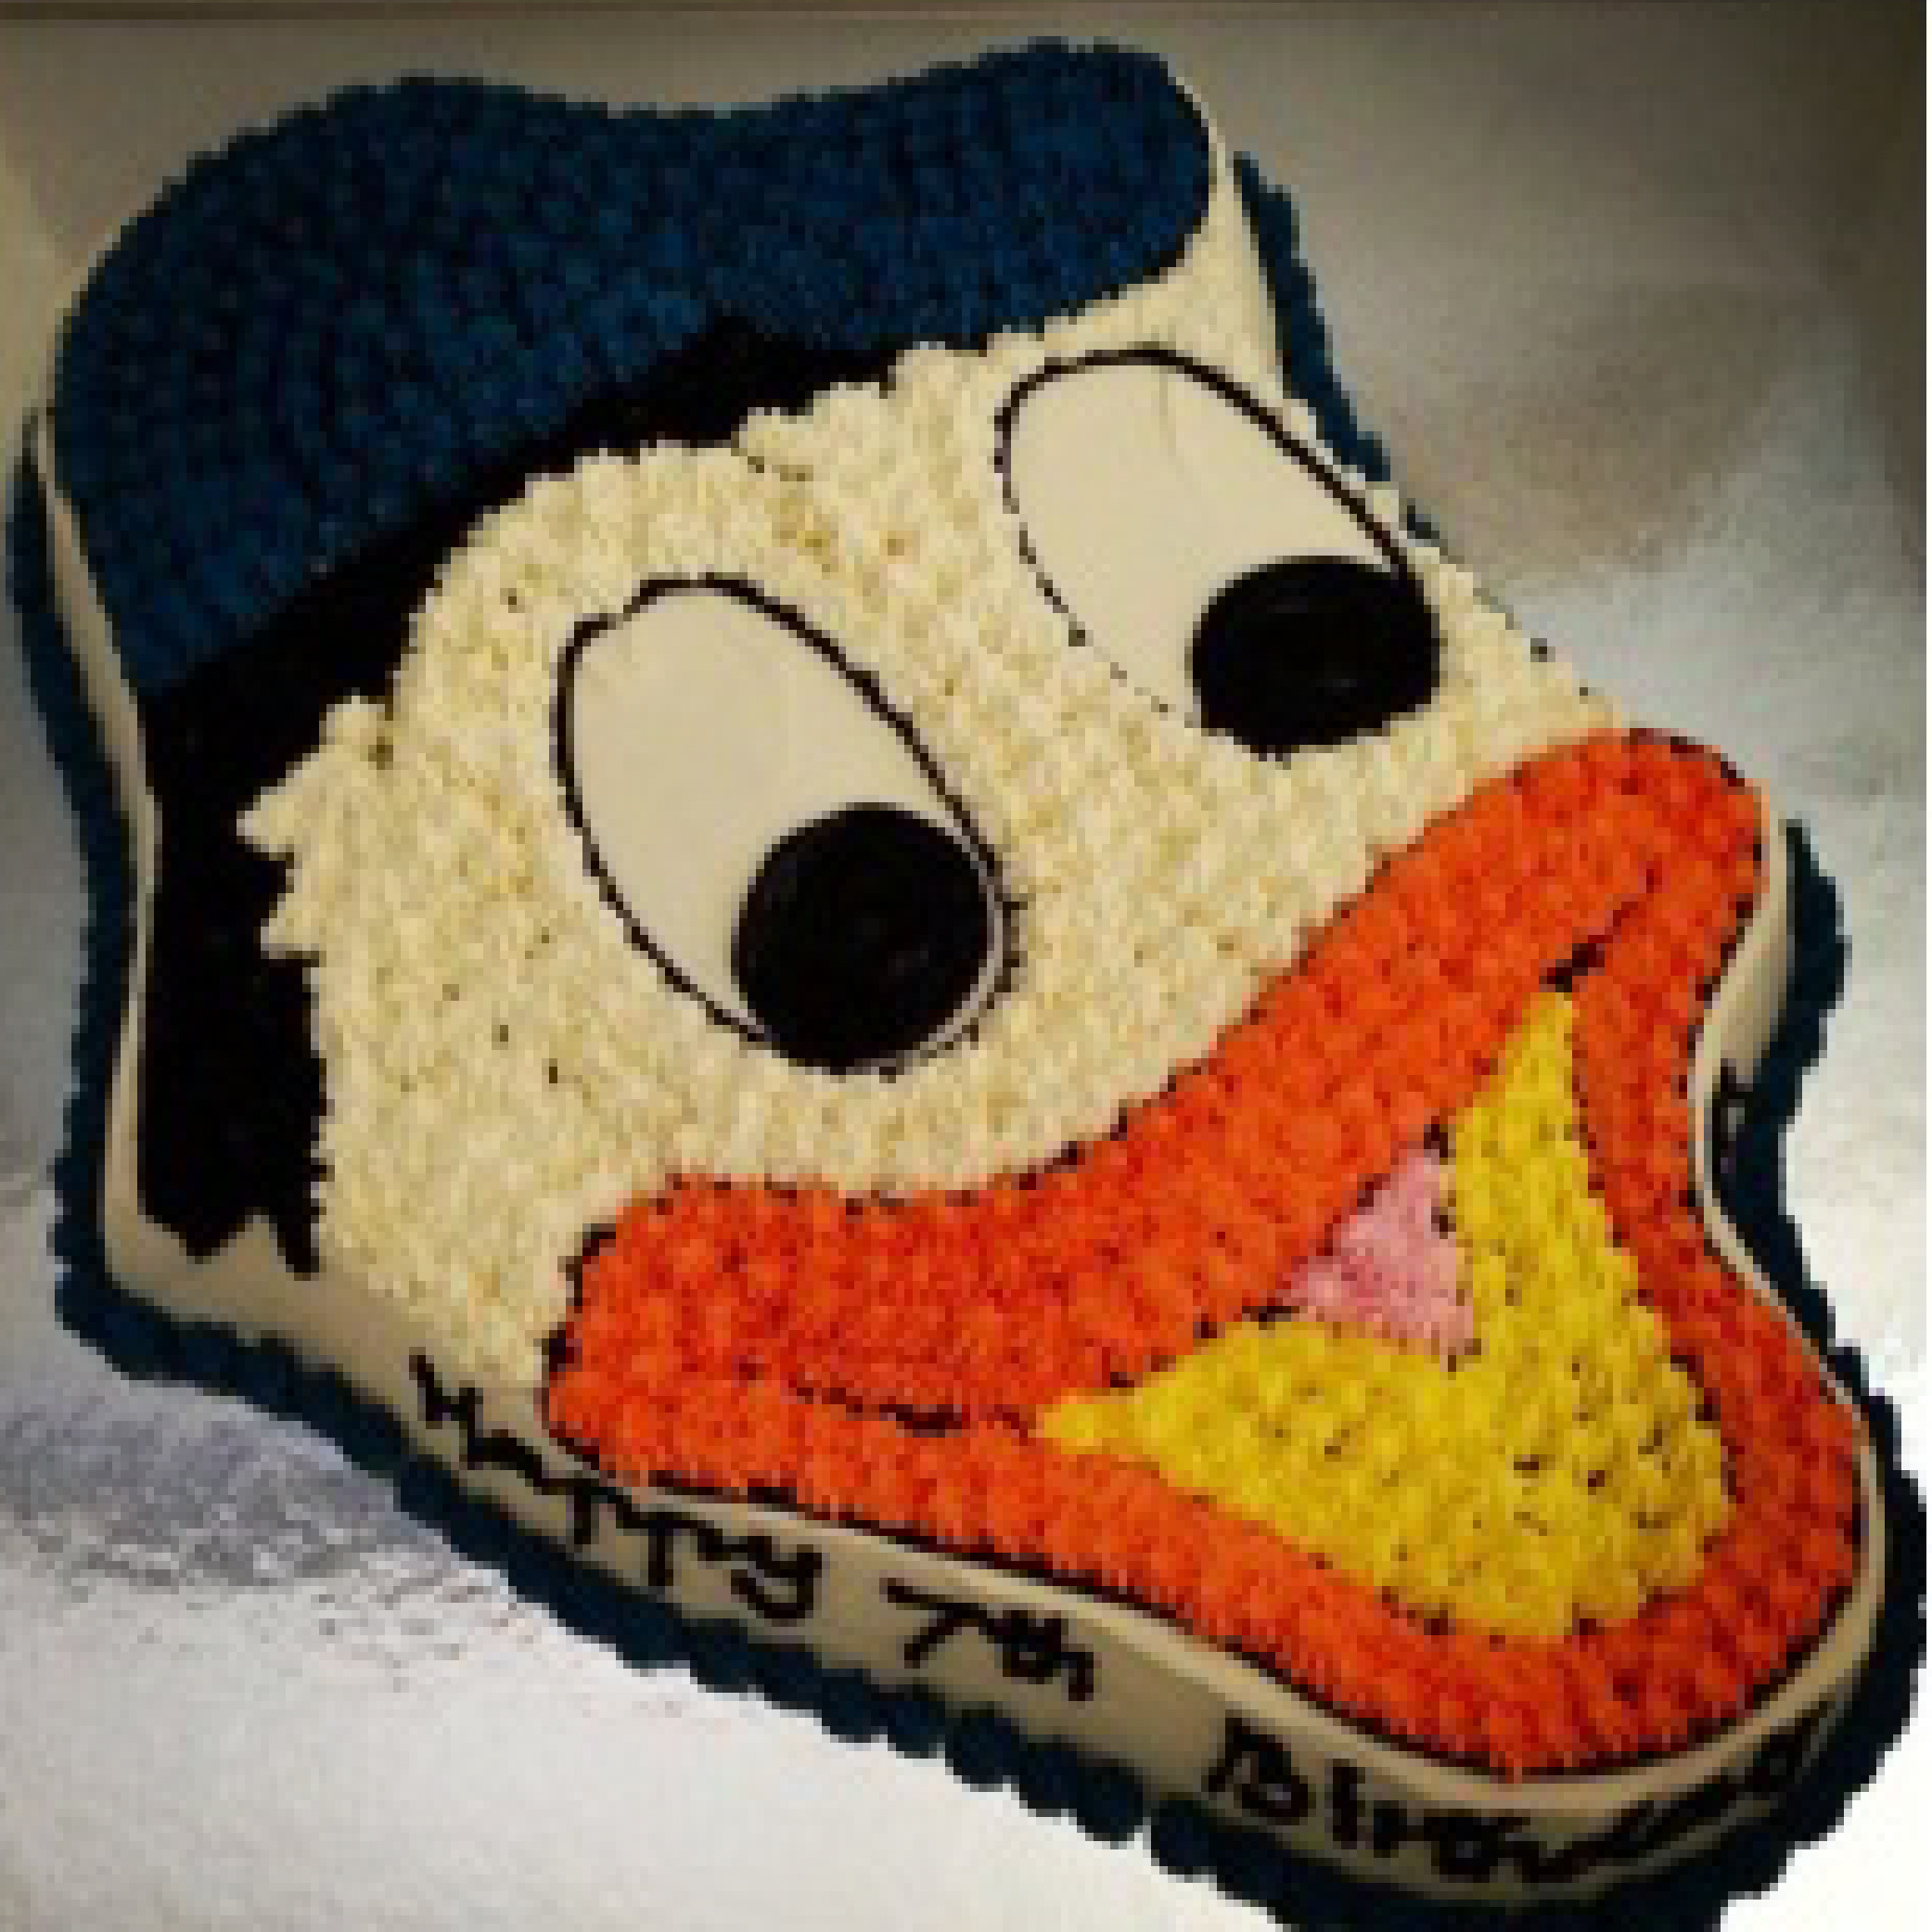 Donald Duck Shaped Ice Cream Cake Melbourne